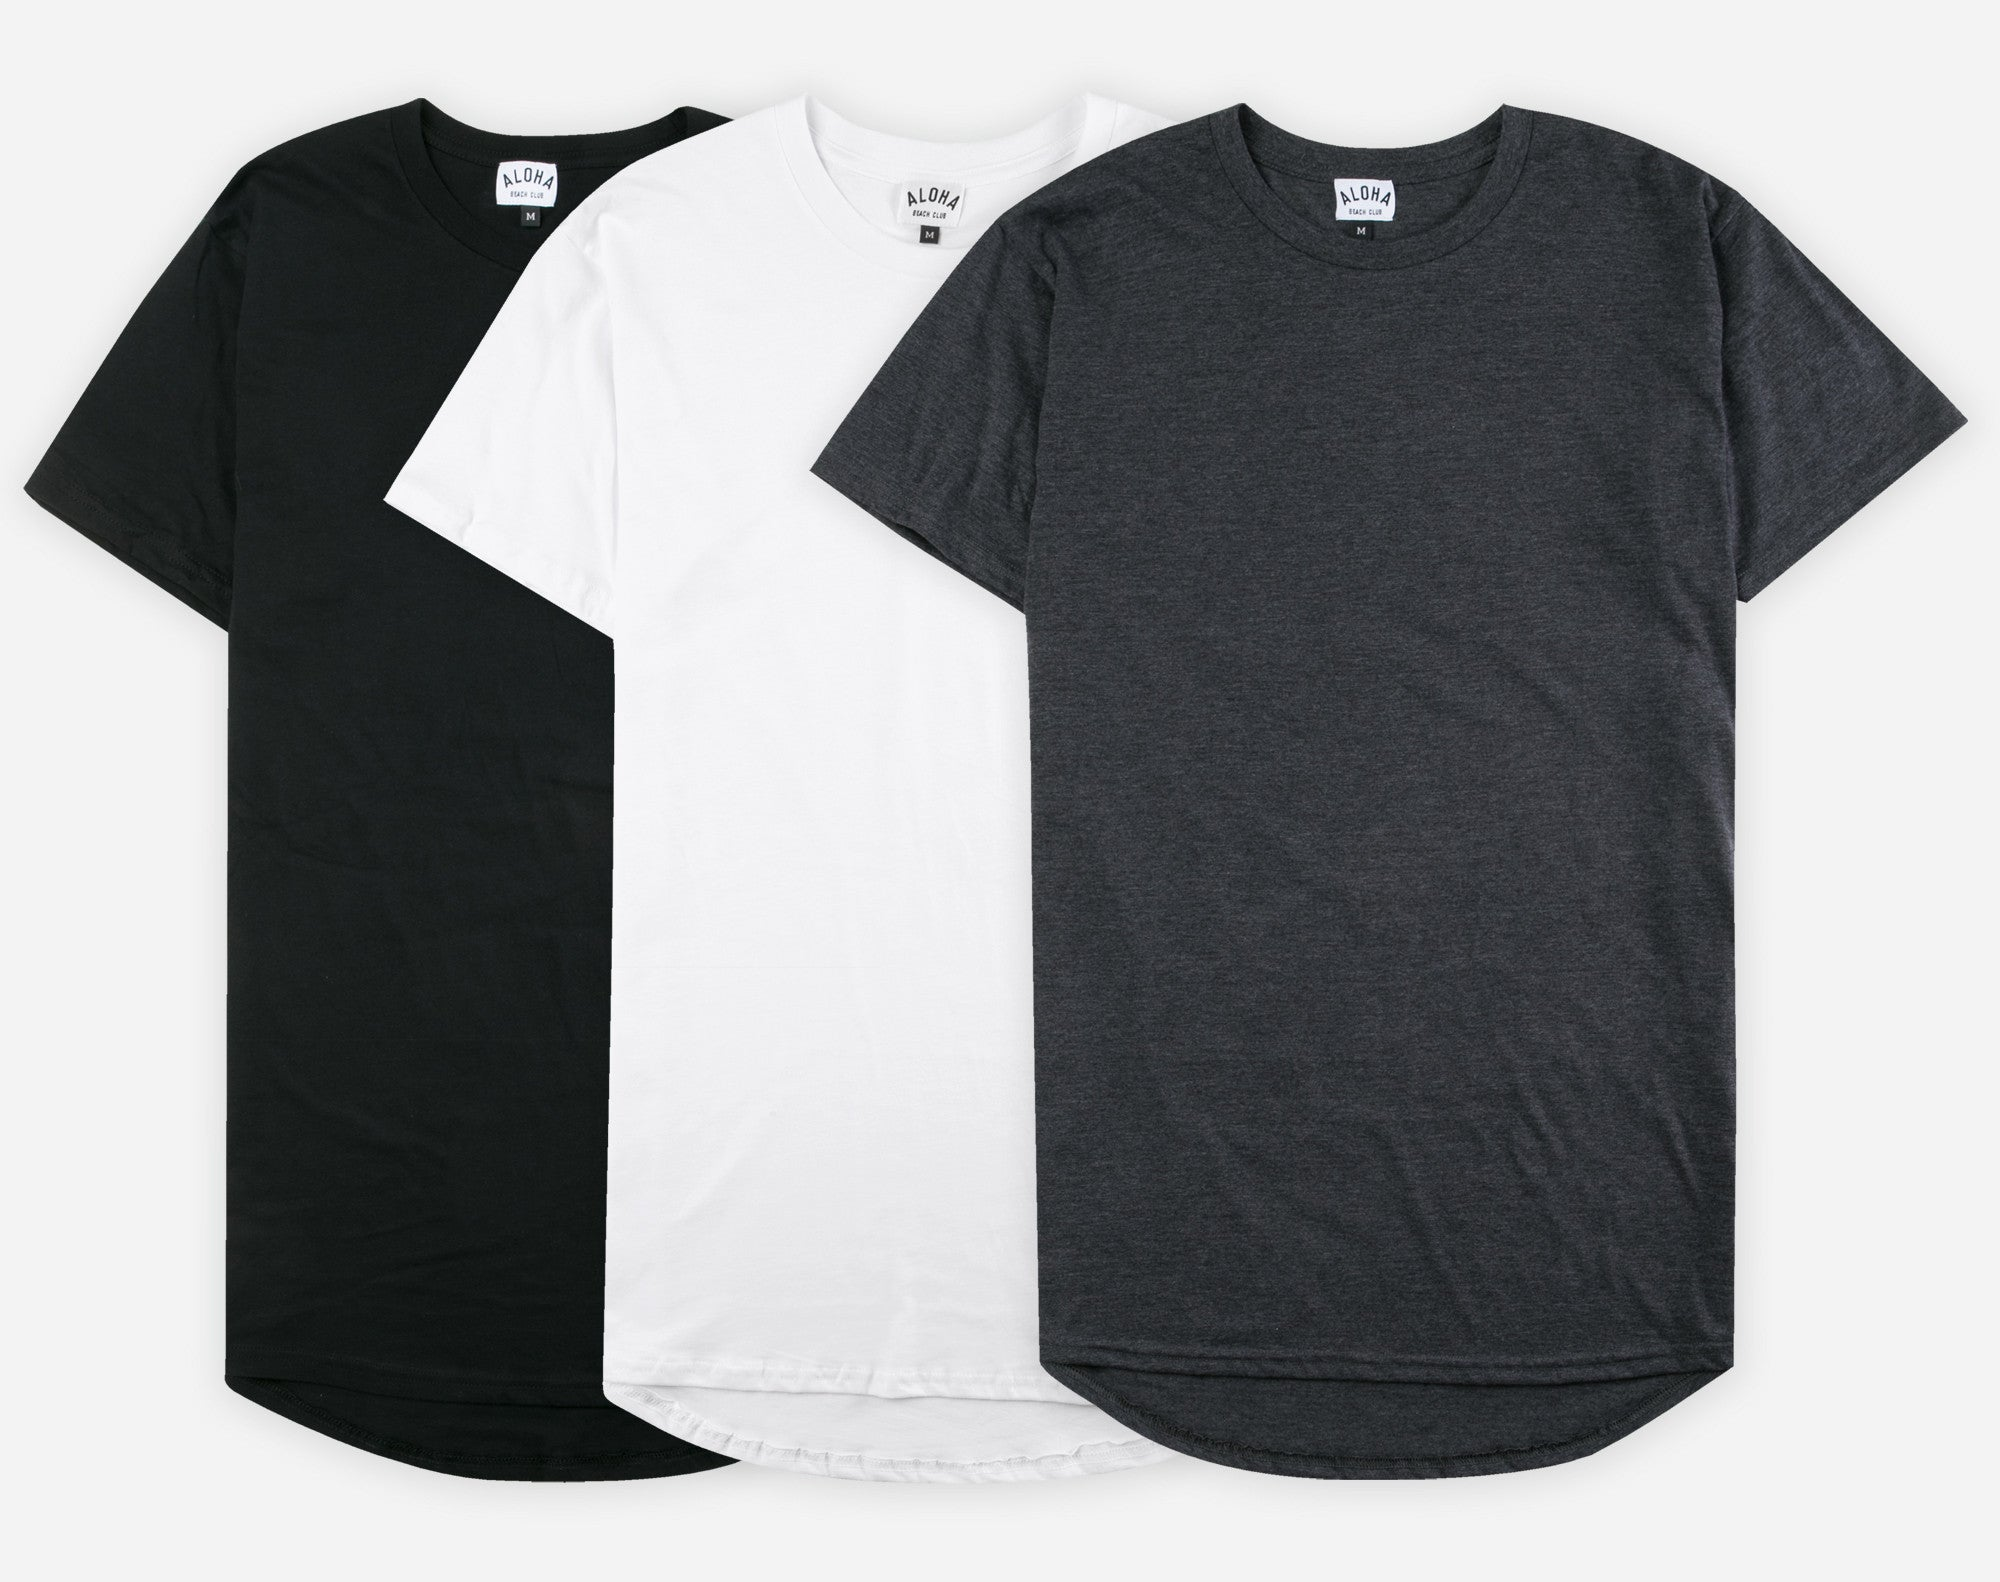 Introducing the Bludger 2.0 Long Tee